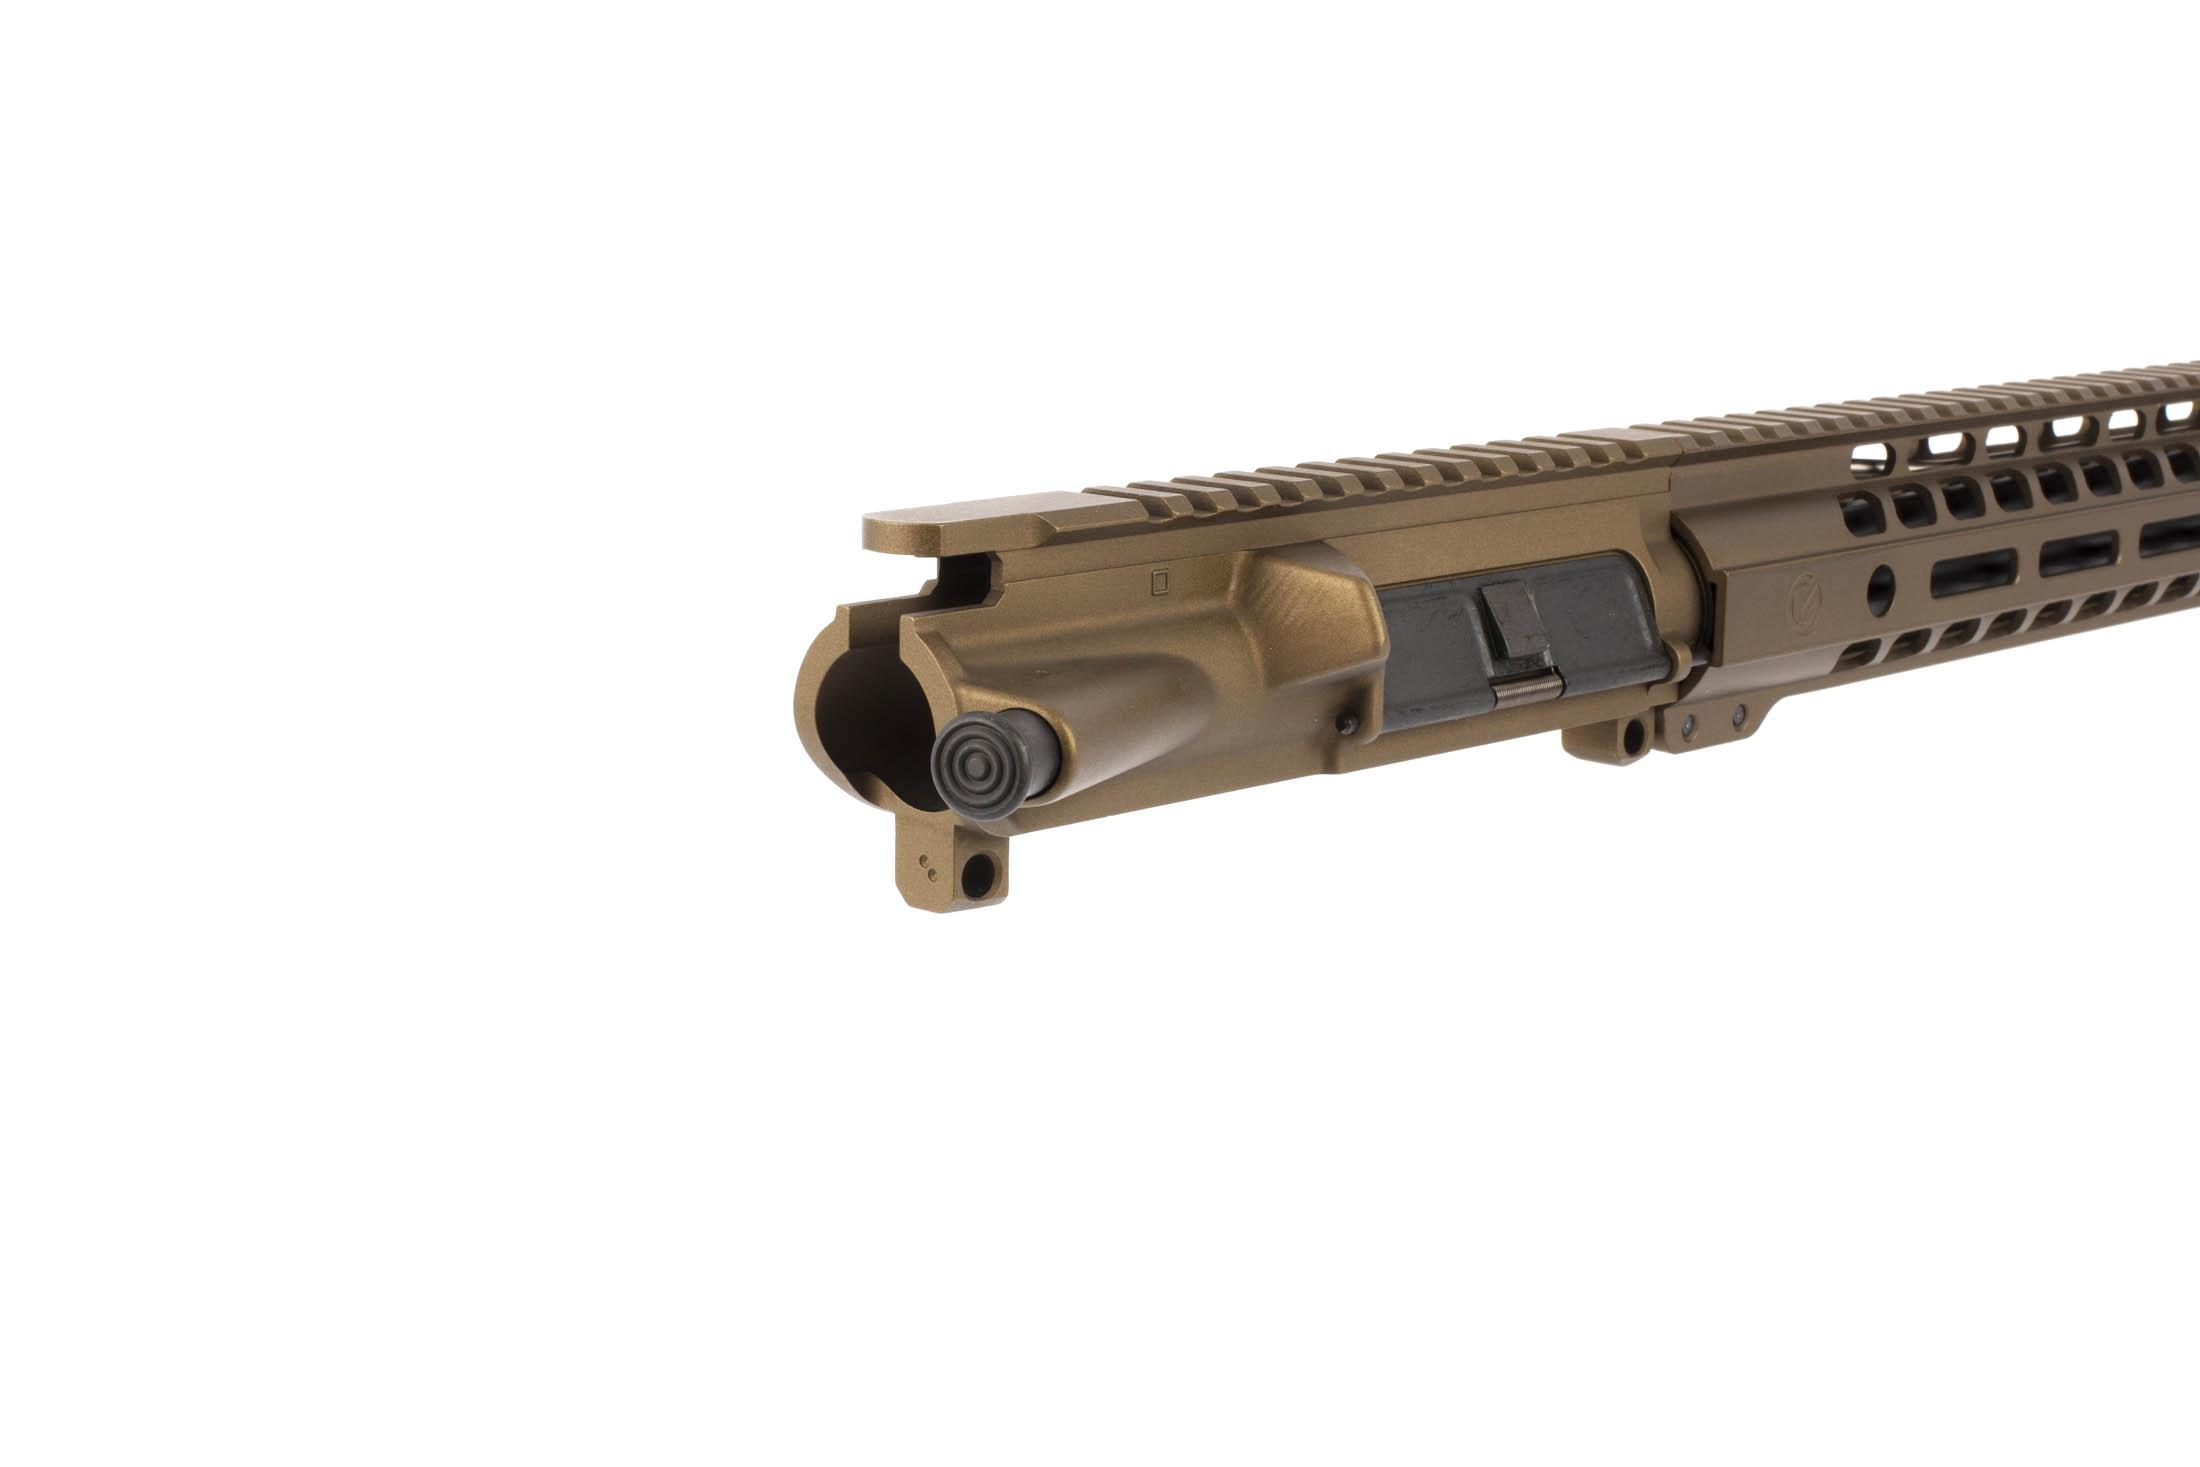 The Ghost Firearms 20 6.5 Grendel Elite Upper Receiver includes a MIL-SPEC port door cover and forward assist